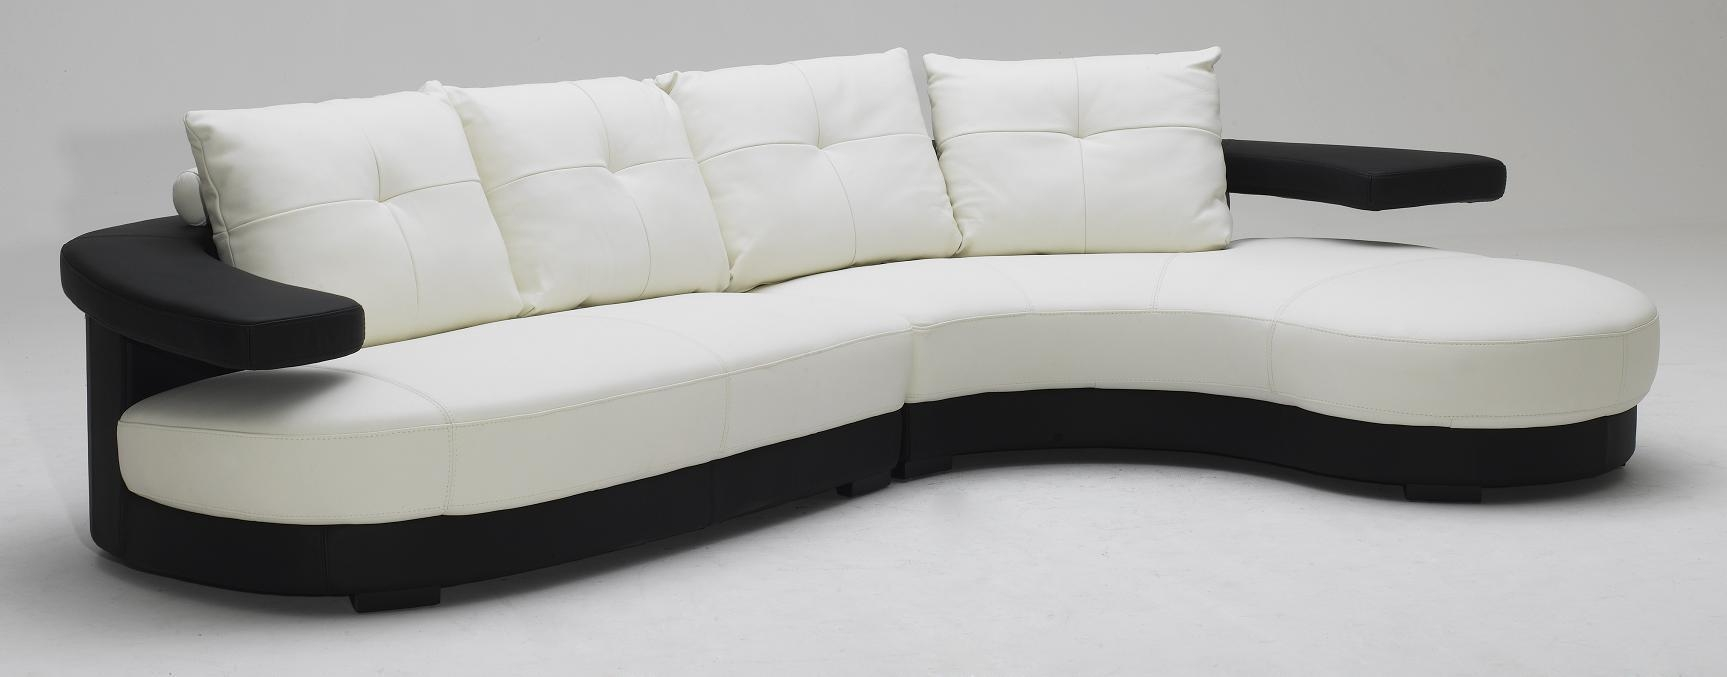 Modern Sofas Sofa Los Angeles For Small Spaces | Deseosol Within Modern Sofas (View 7 of 20)